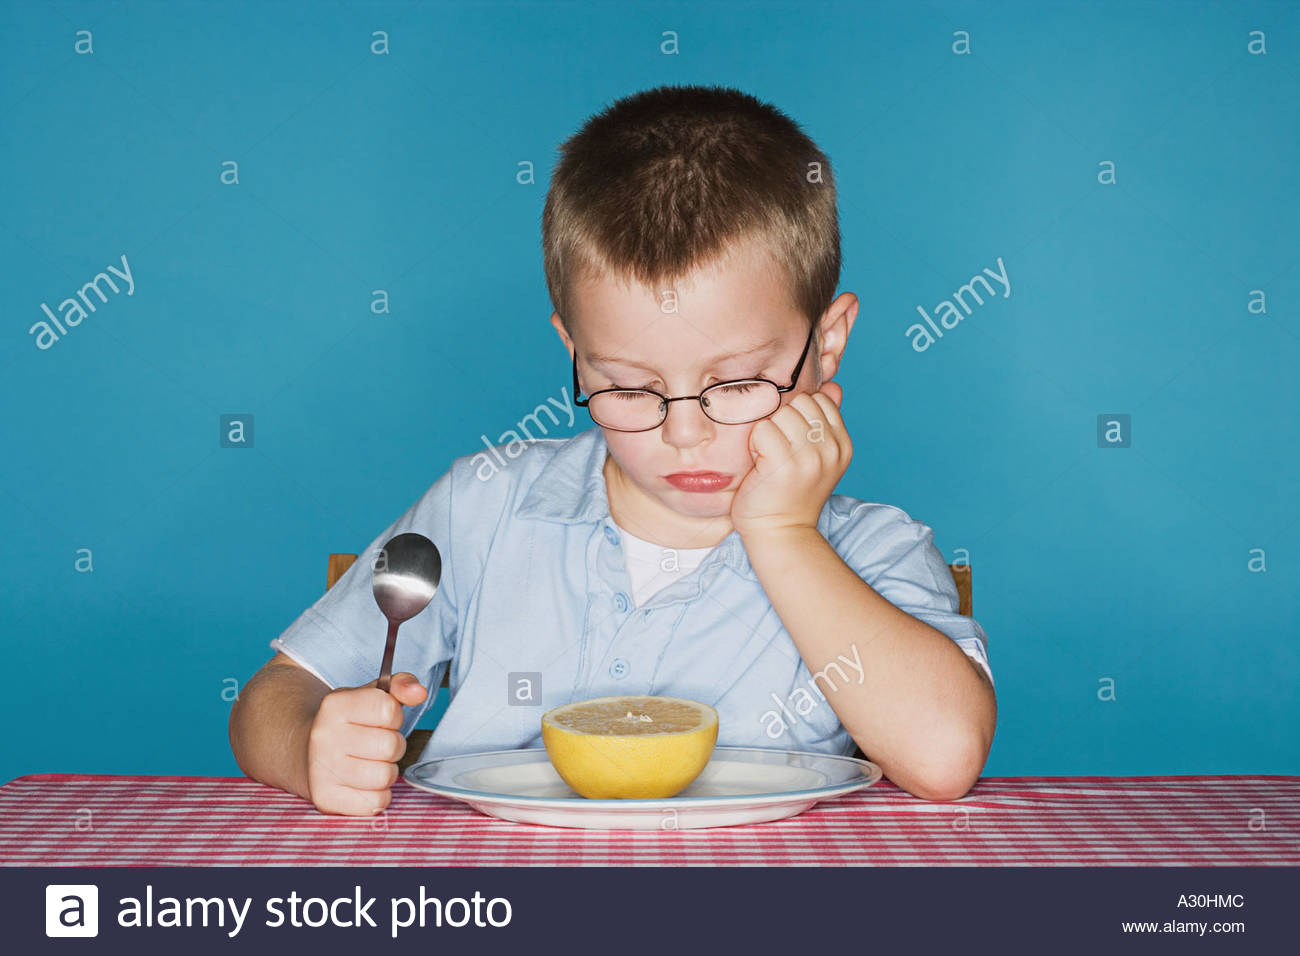 Sullen boy with grapefruit - Stock Image